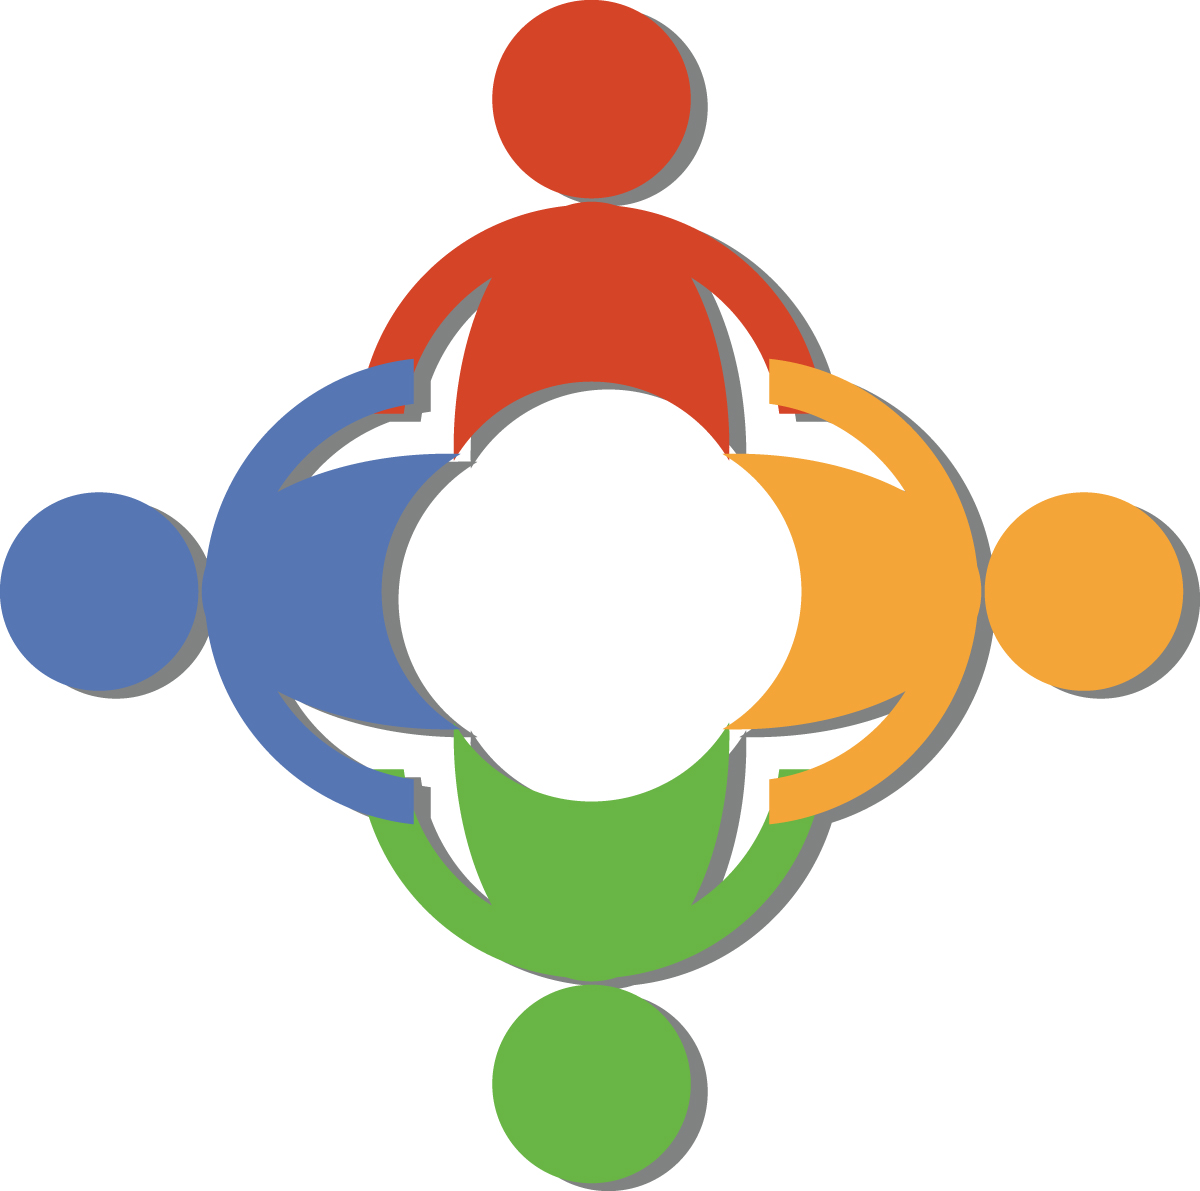 People circle connect clipart.